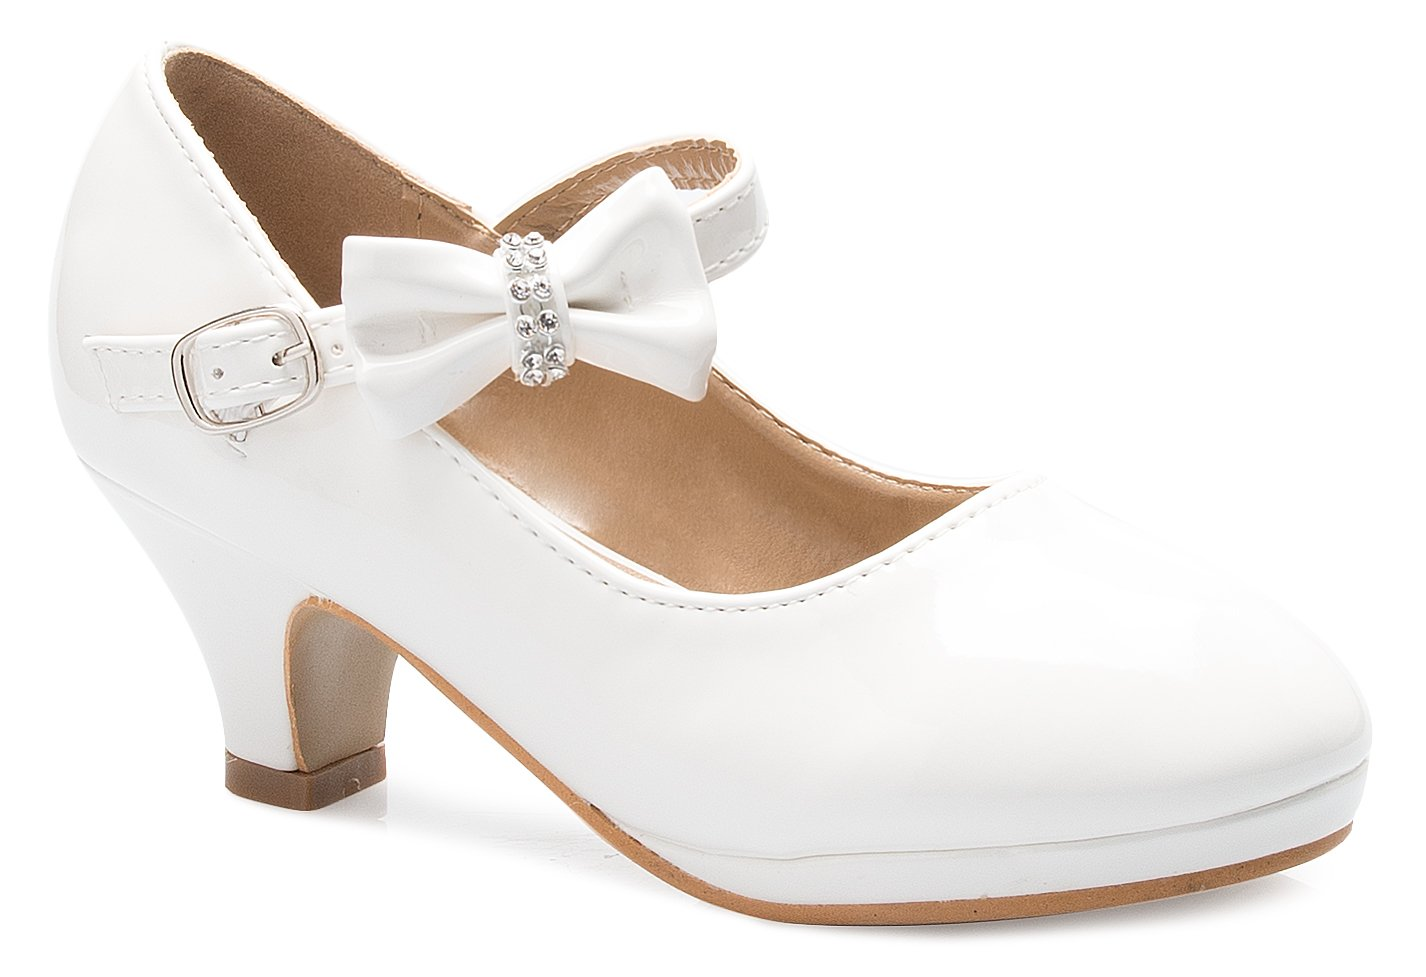 OLIVIA K Girls Bow Mary Jane Kitten Heel Pumps (Toddler/Little Girl)